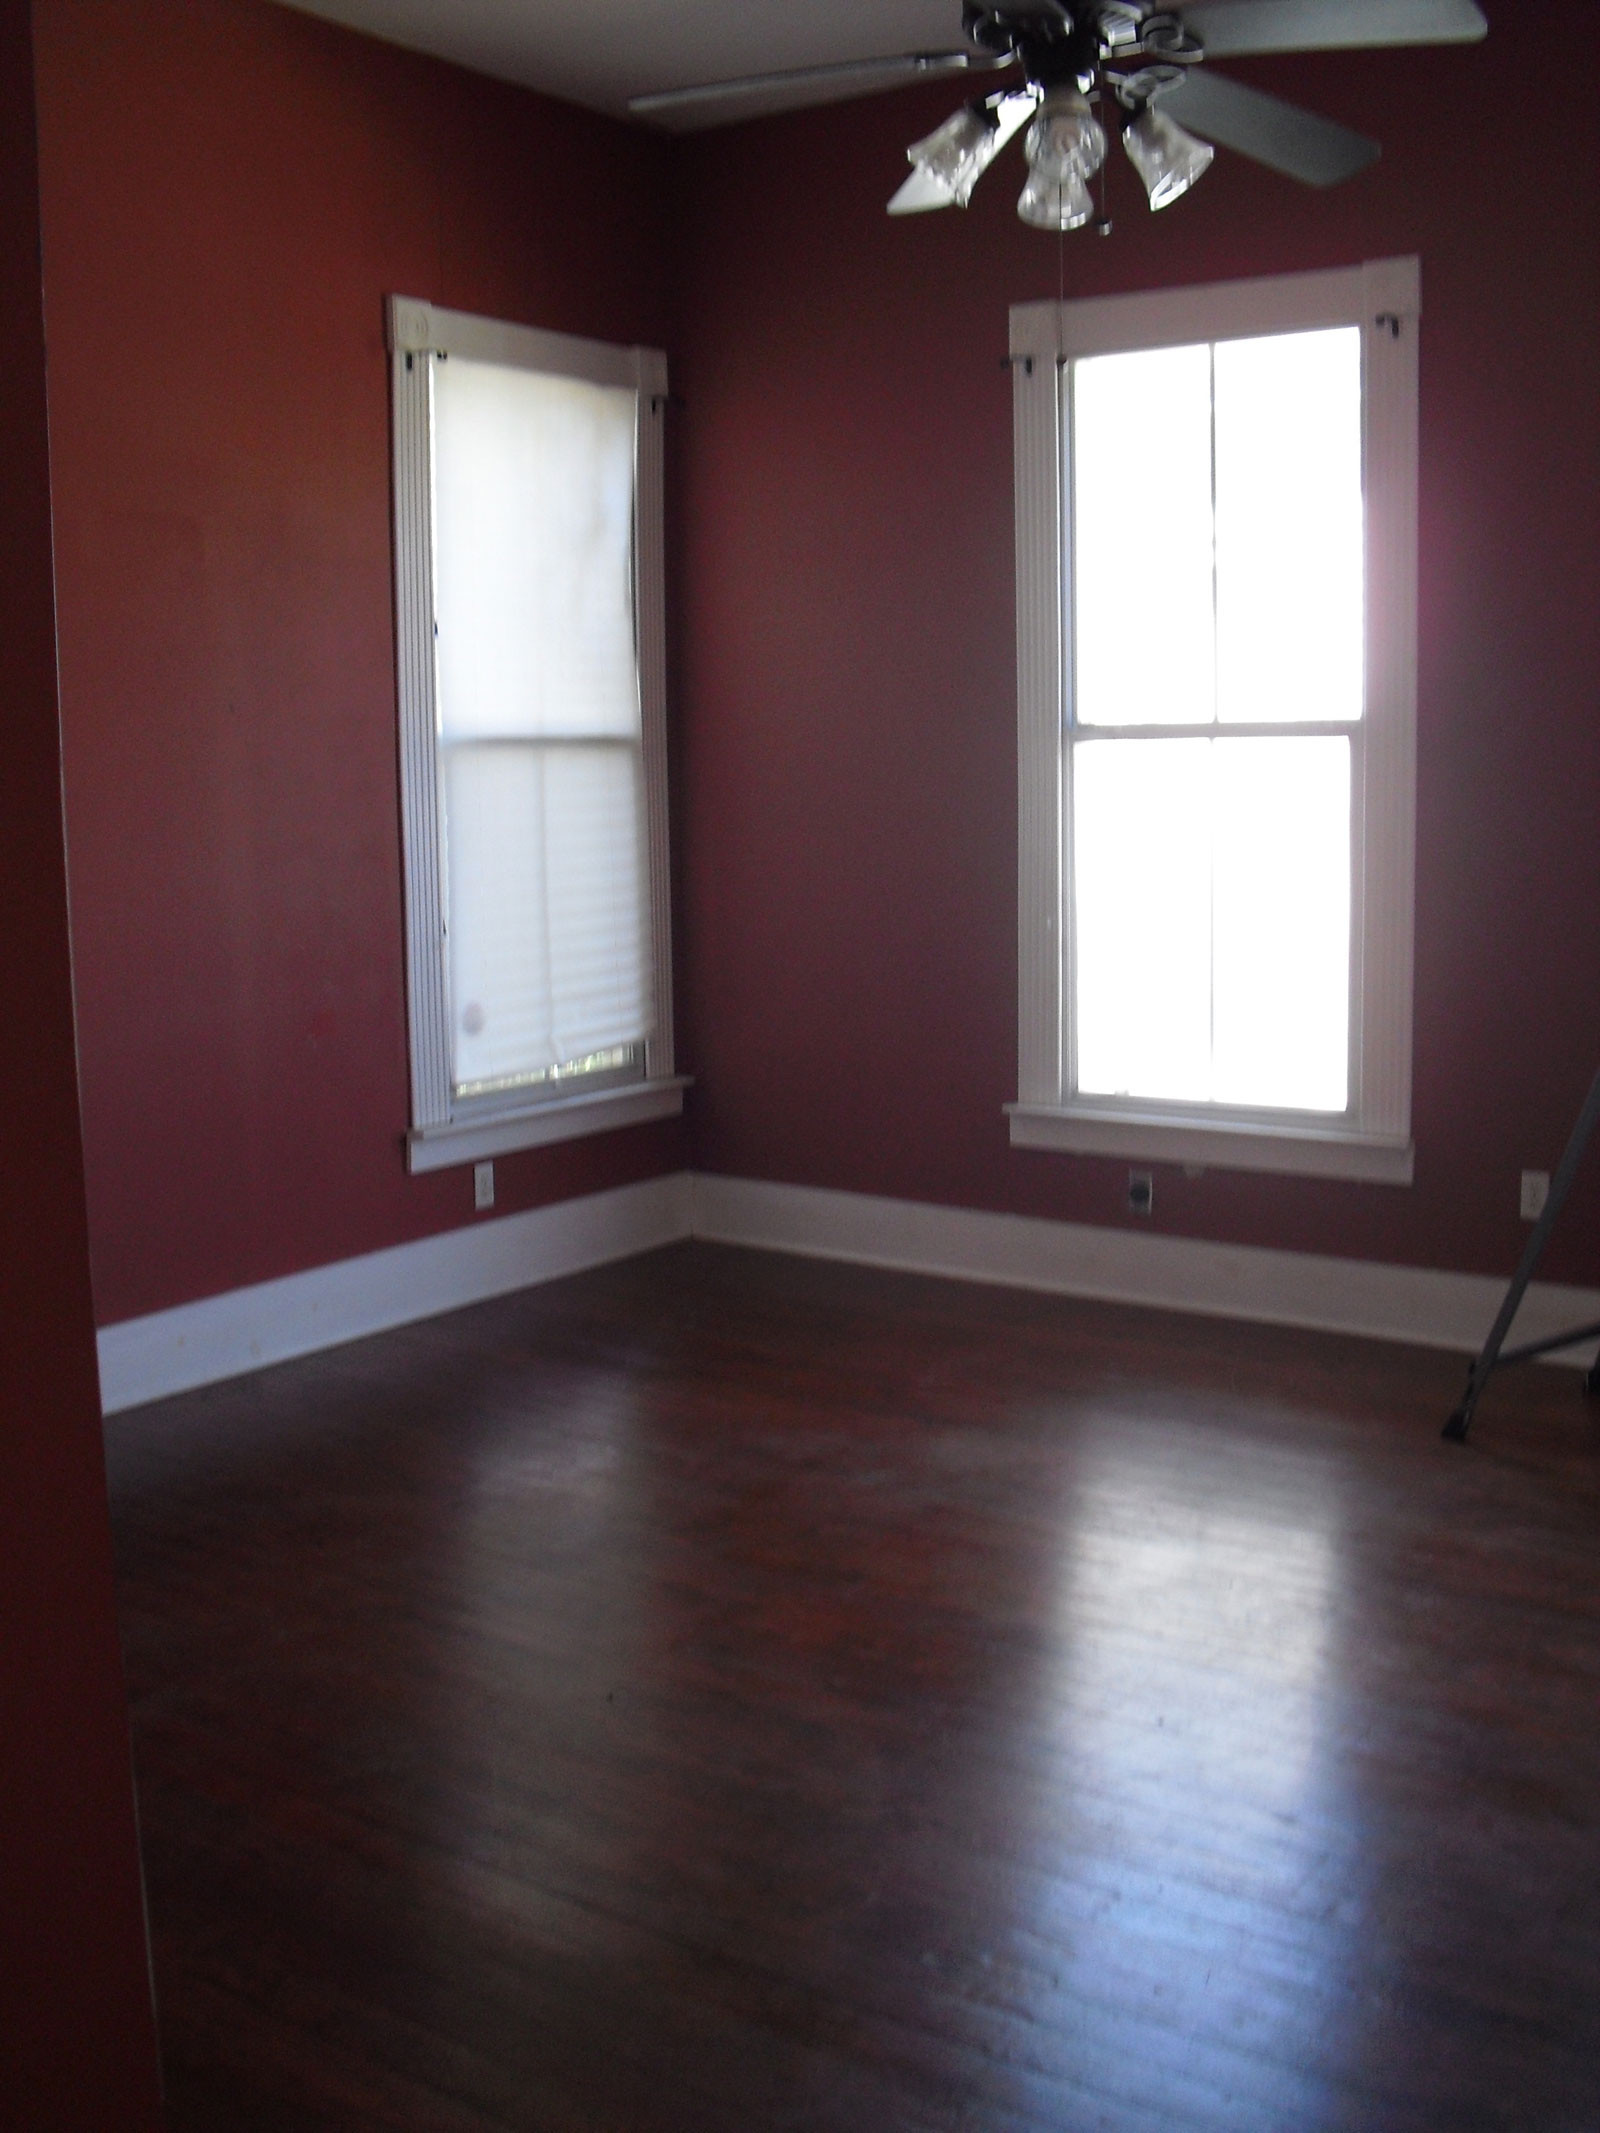 Red Oak Hardwood Floor Colors Of Red Dark Hardwood Floors Delectable Paint Colors for Living Room Inside Red Dark Hardwood Floors Delectable Paint Colors for Living Room withod Floors Flooroden